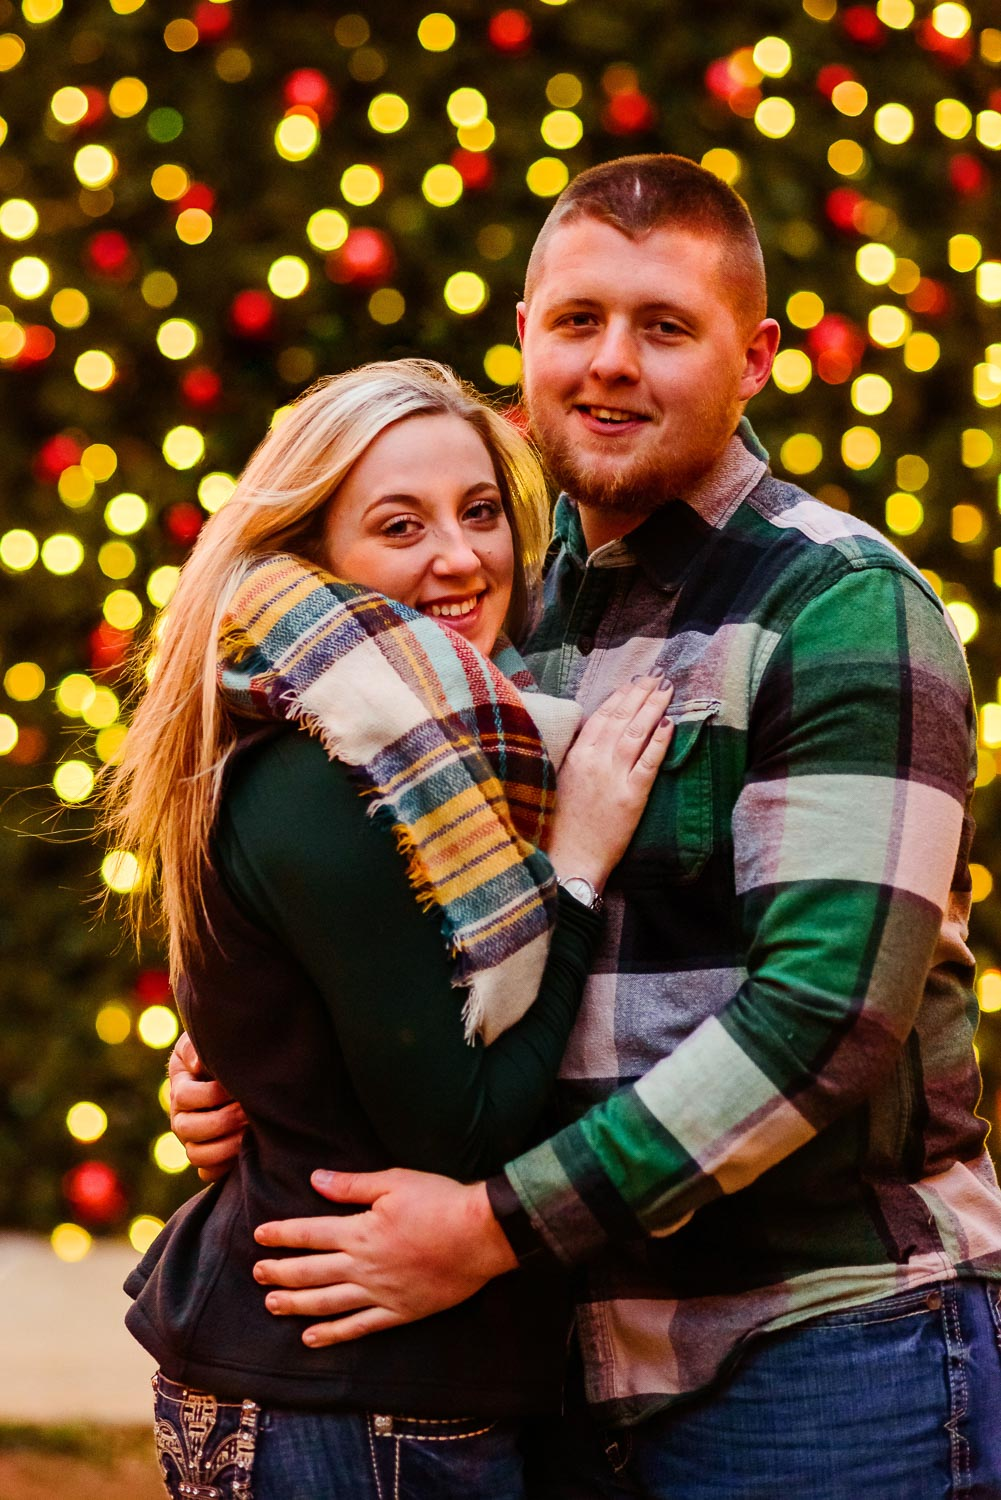 Christmas light bokeh background and smiling future mrs and mr in front. In Knoxville TN